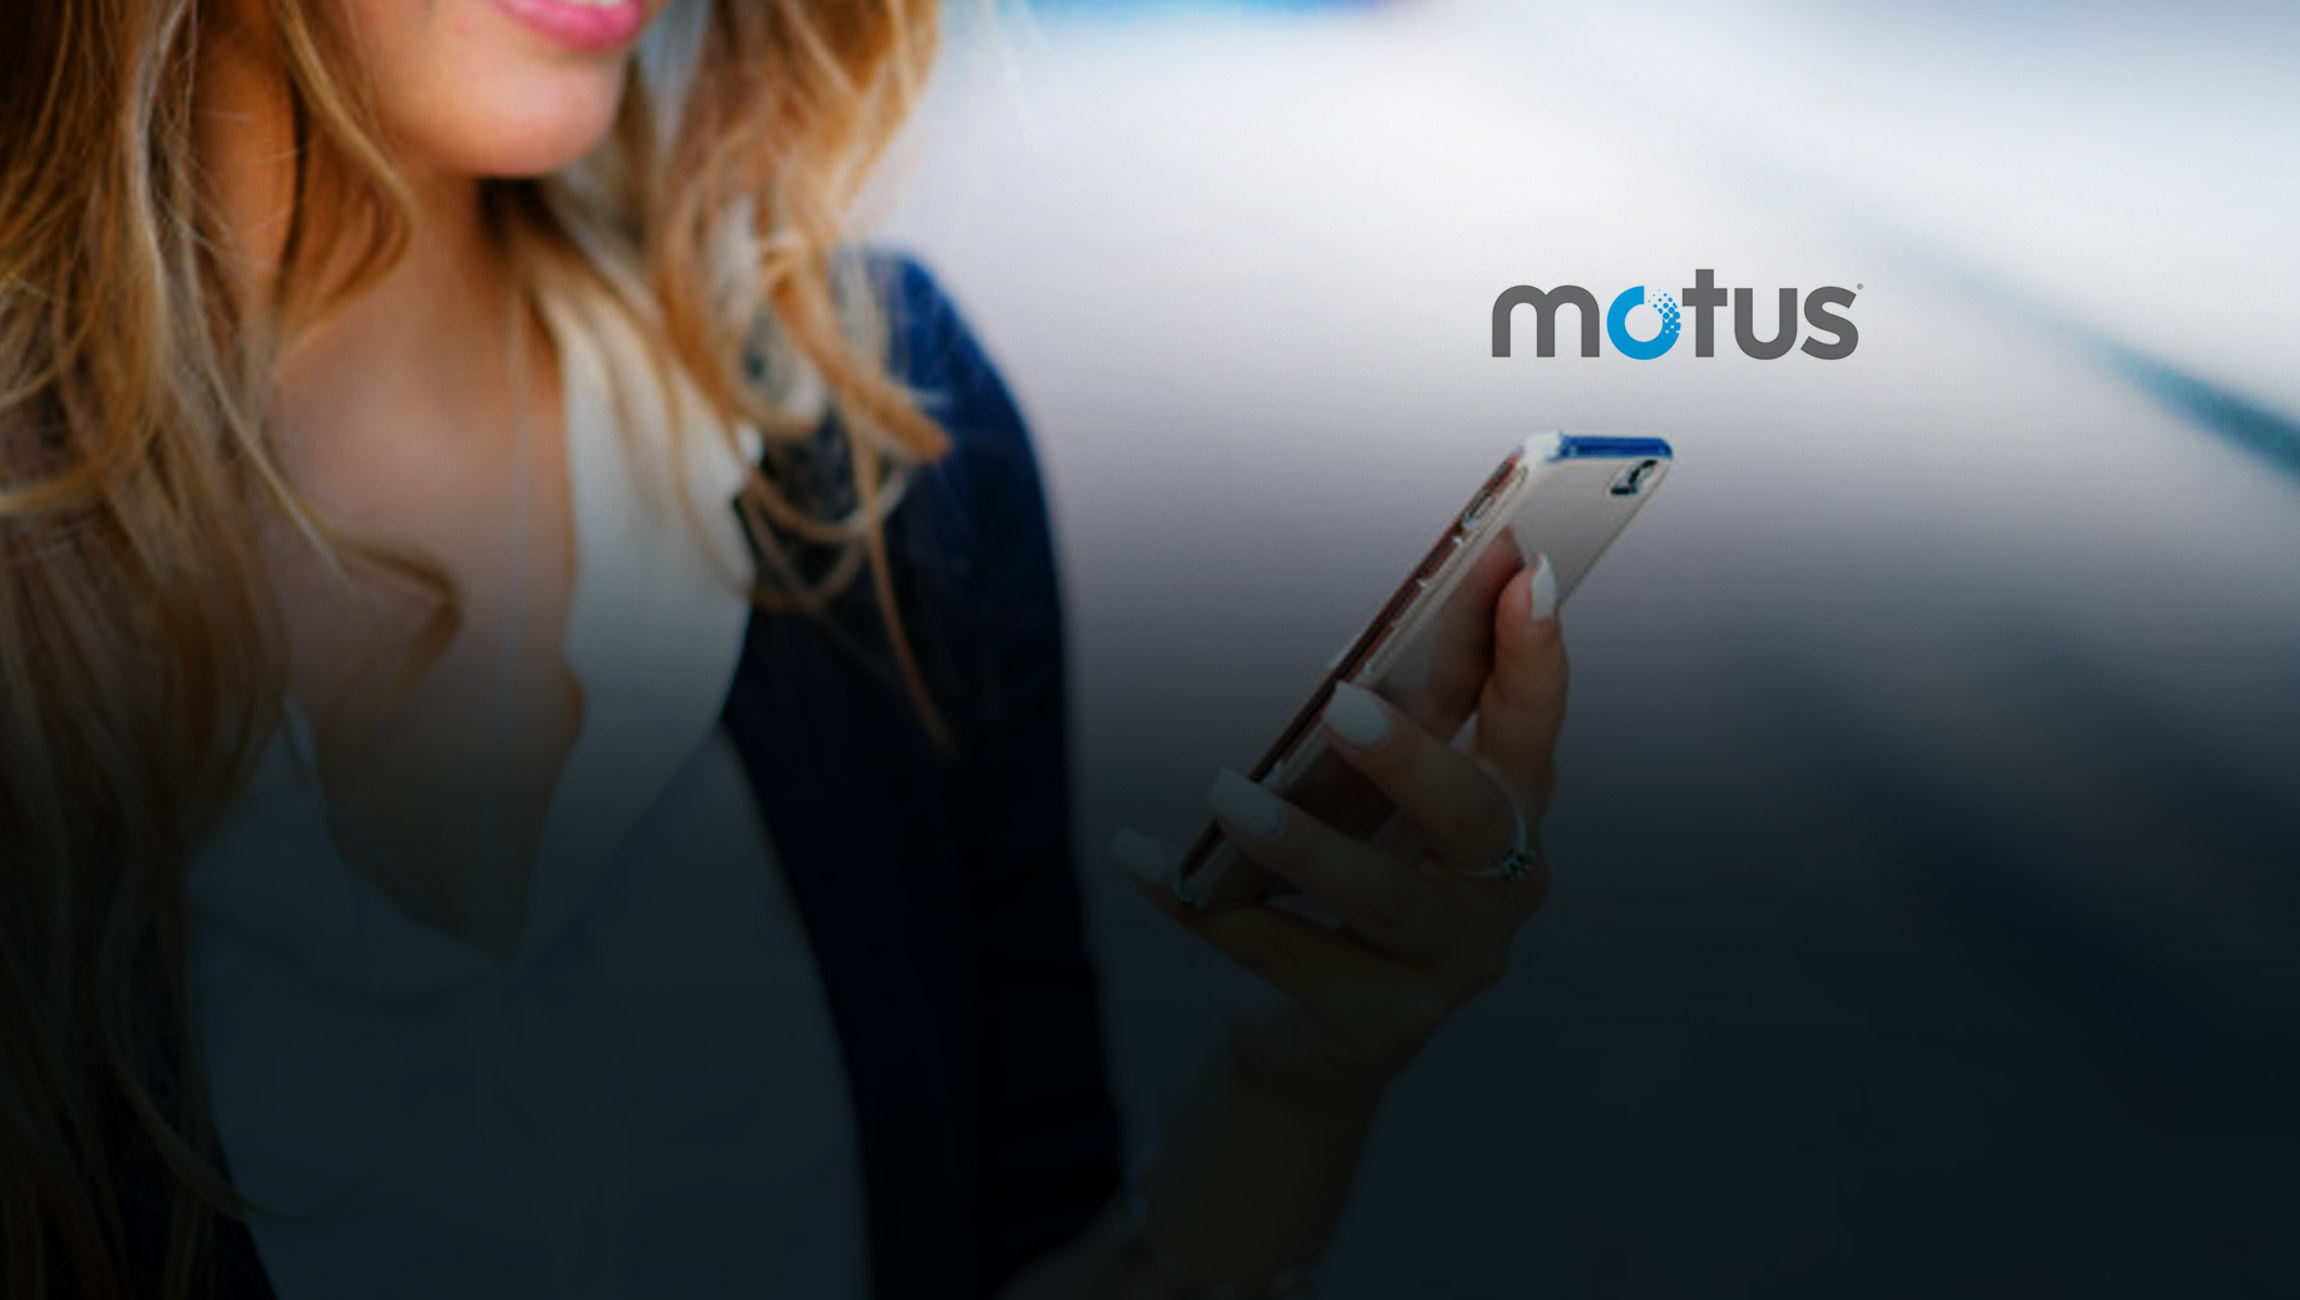 Motus Appoints Head of Corporate Development as Acquisitions Bring its Reimbursement Solutions to New Markets